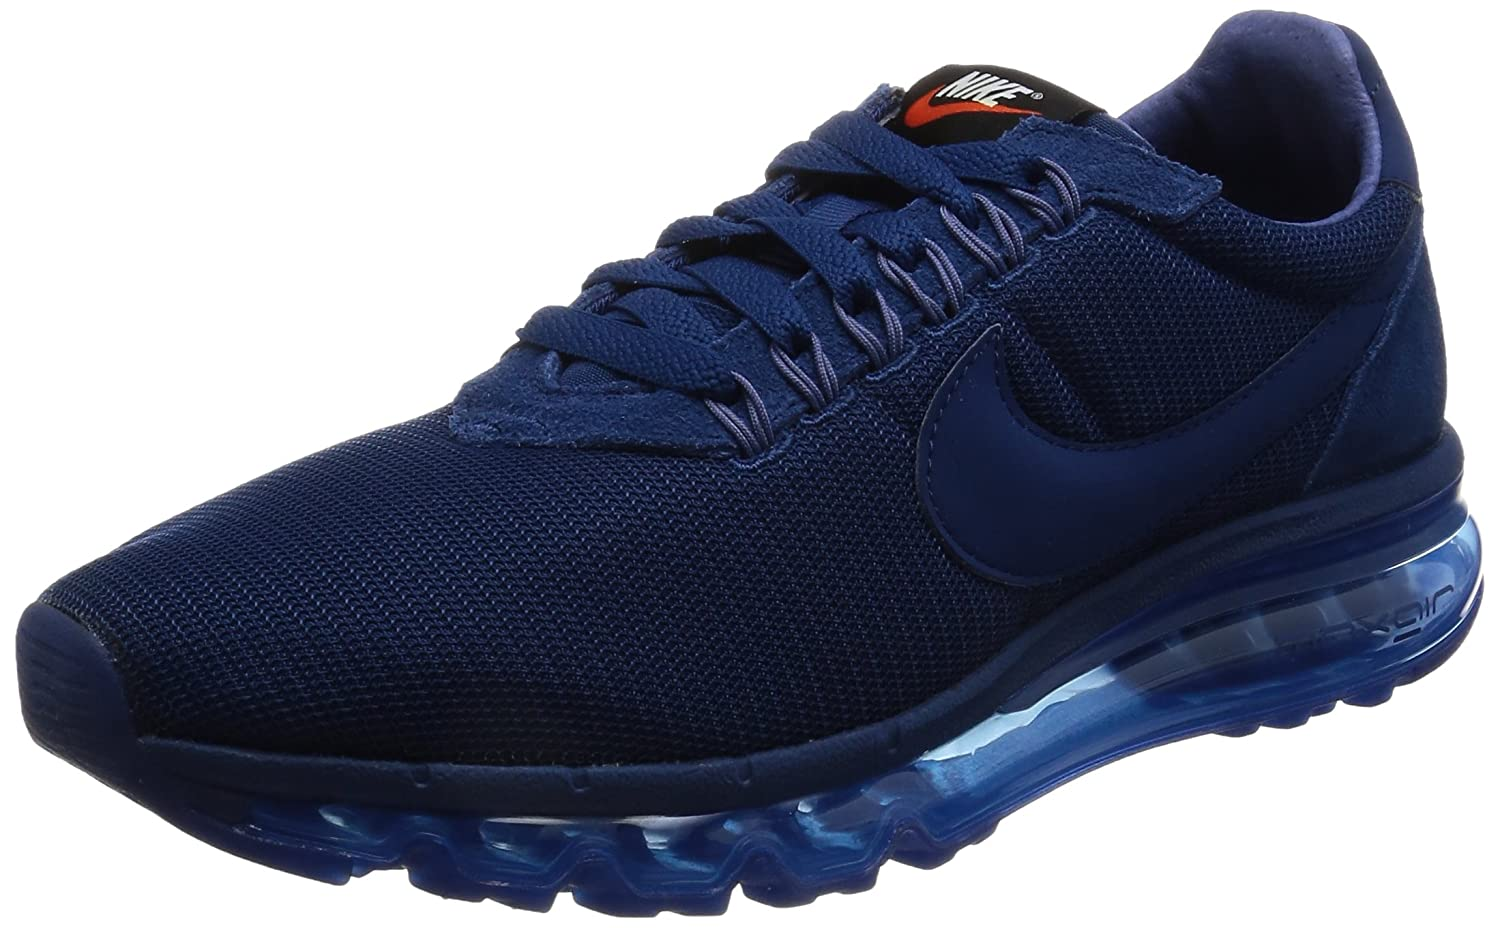 info for 2e40b 00ae4 Nike AIR MAX LD-Zero Men's Running Shoes